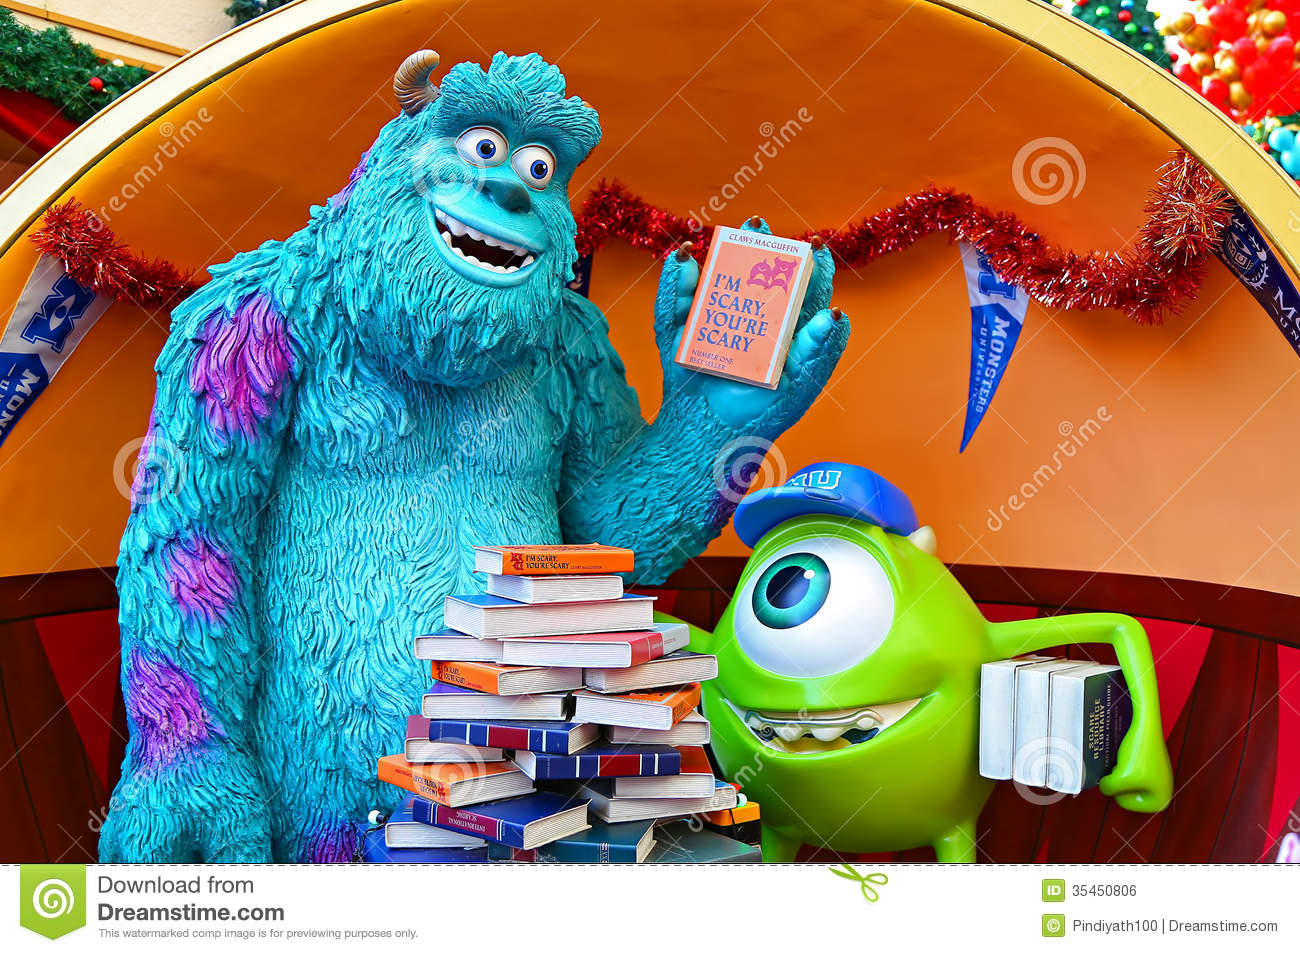 Famous characters from disney pixar movie monsters inc james p